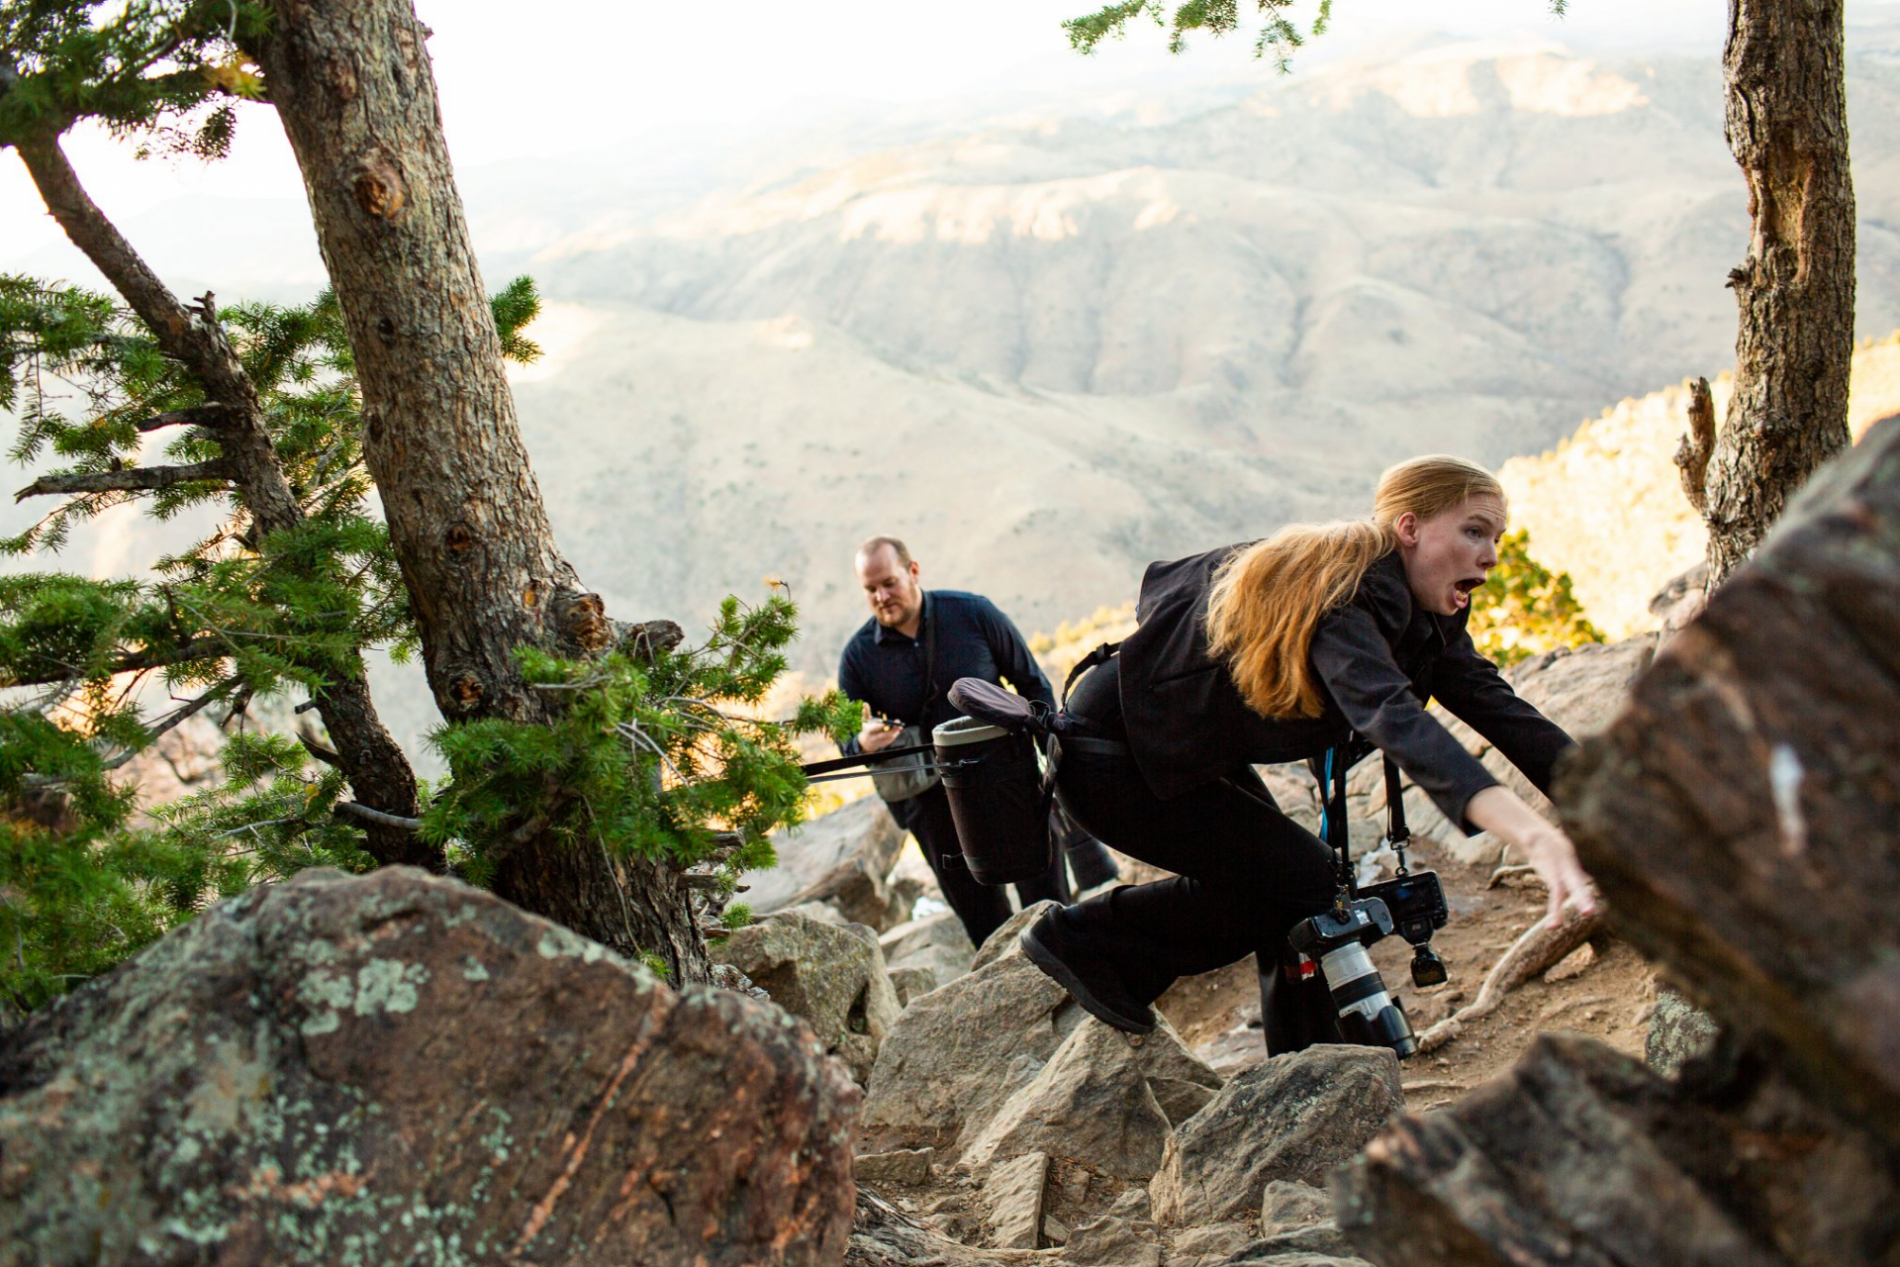 The Colorado wedding photographer's belt gets stuck on a tree branch